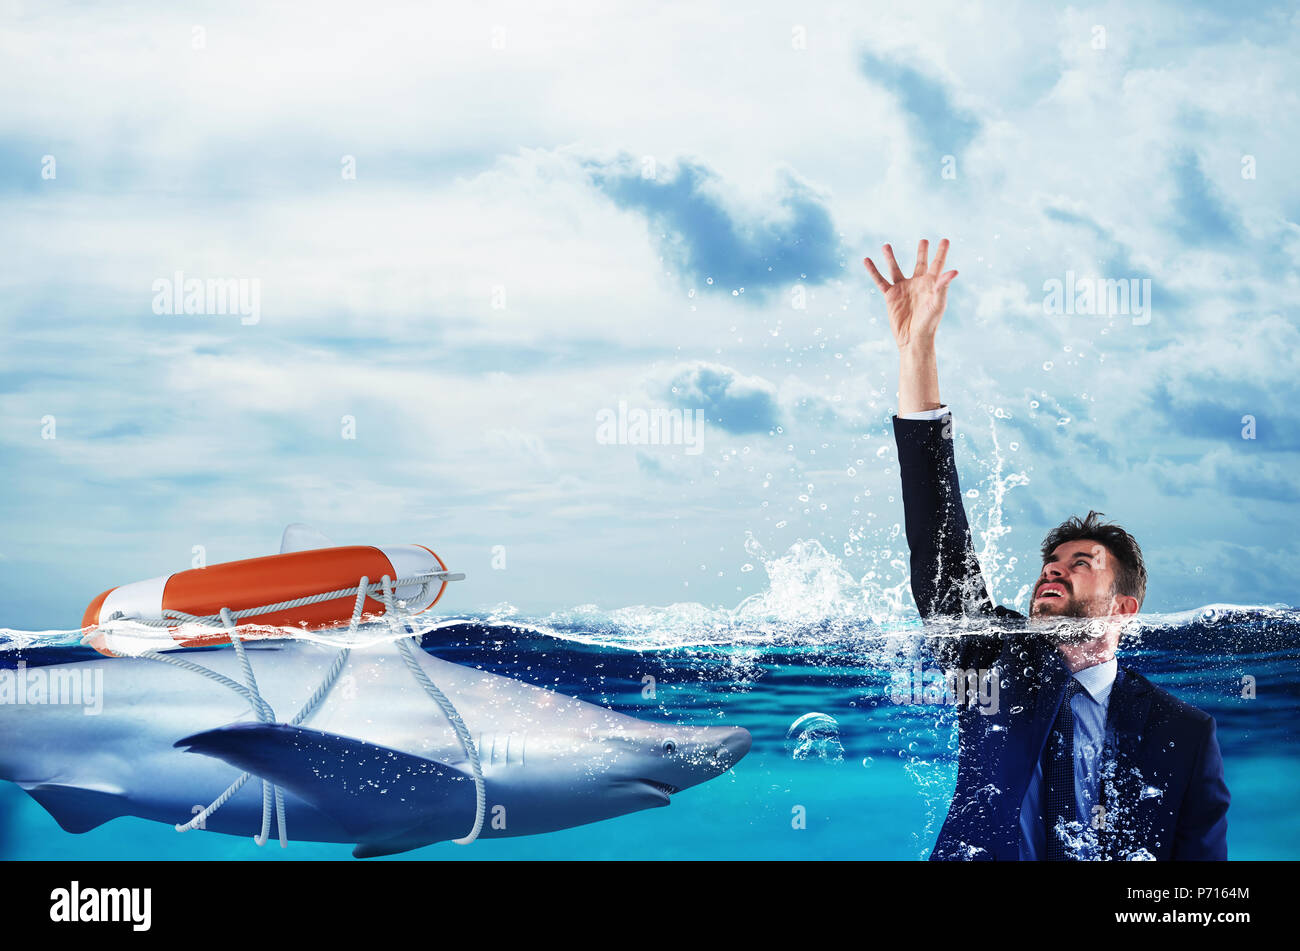 Businessman is likely to drown. Help with deception concept - Stock Image